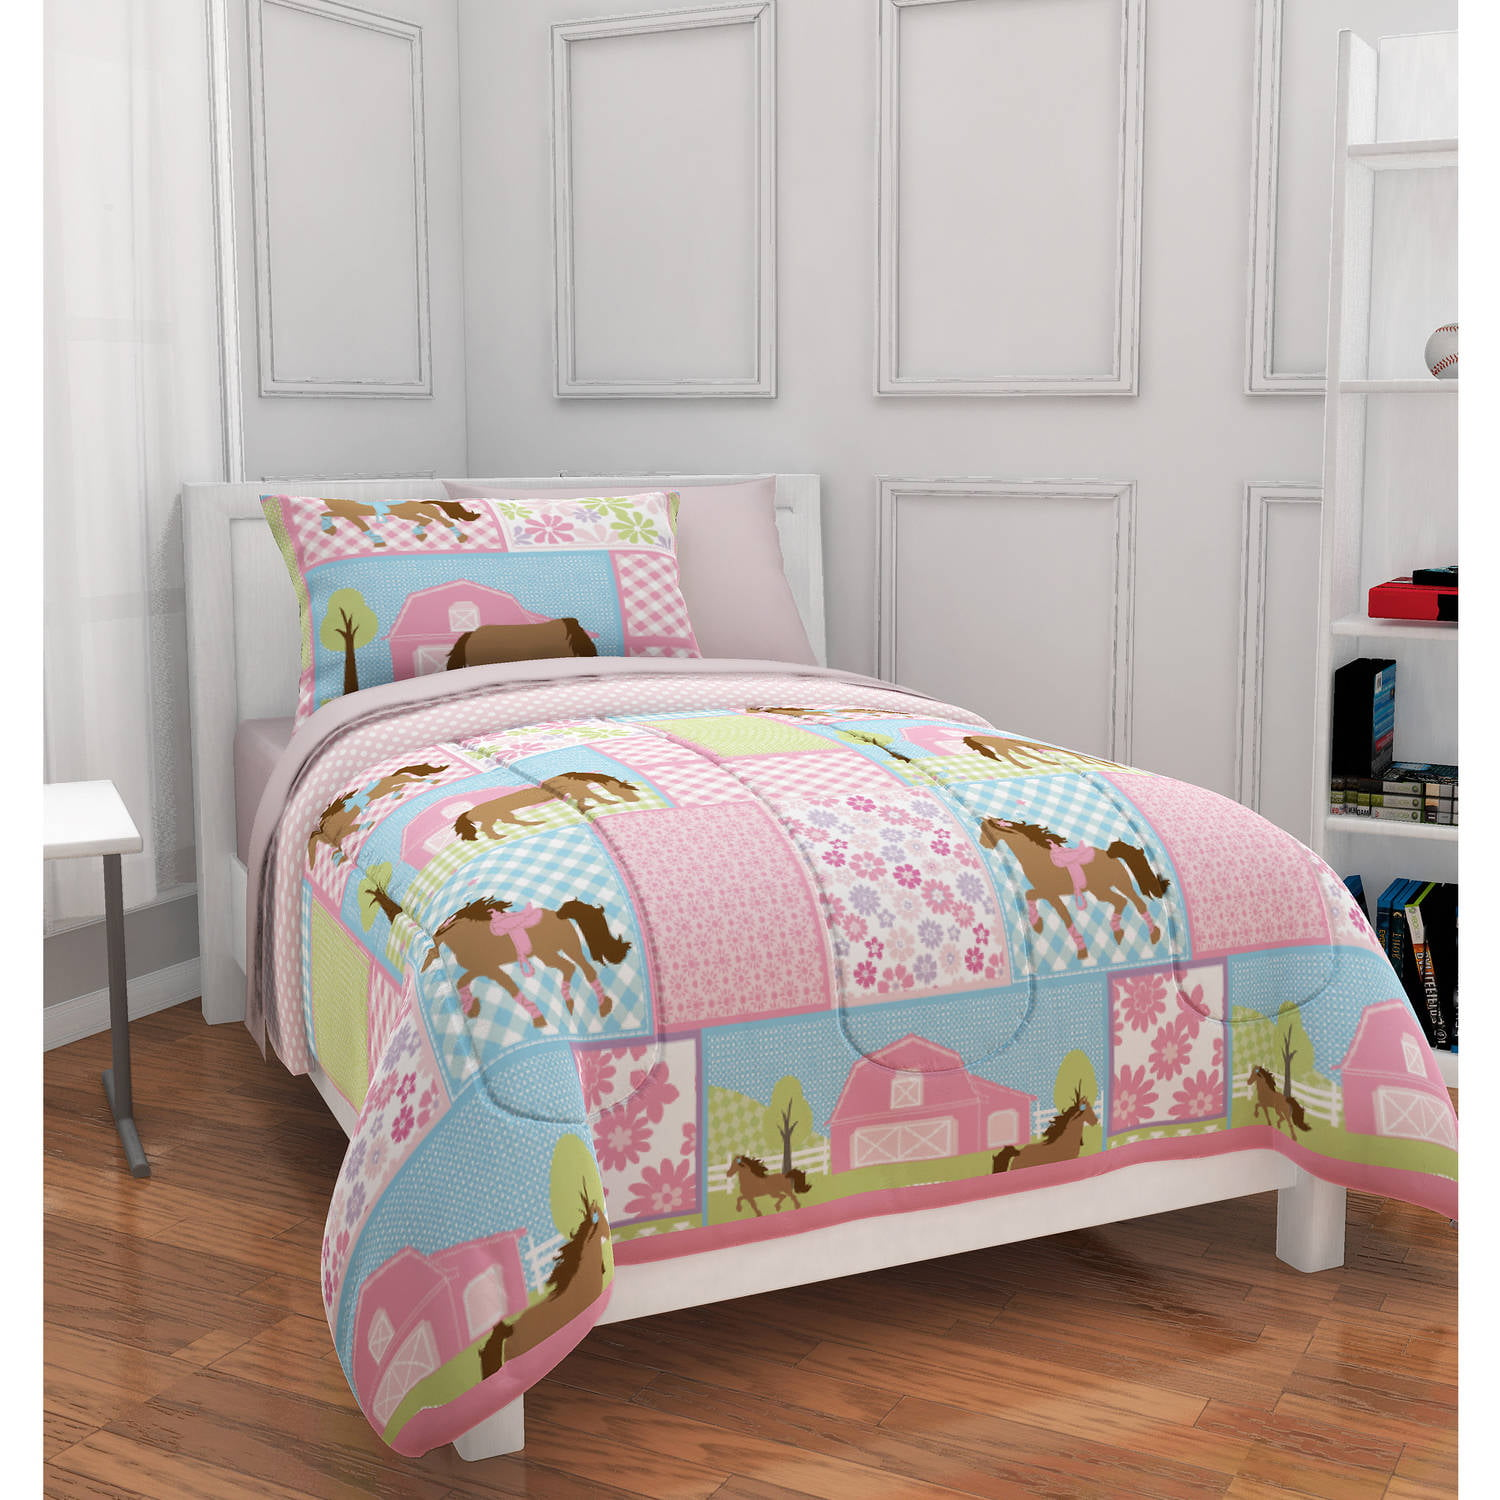 Mainstays Kids Country Meadows Bed In A Bag Bedding Set